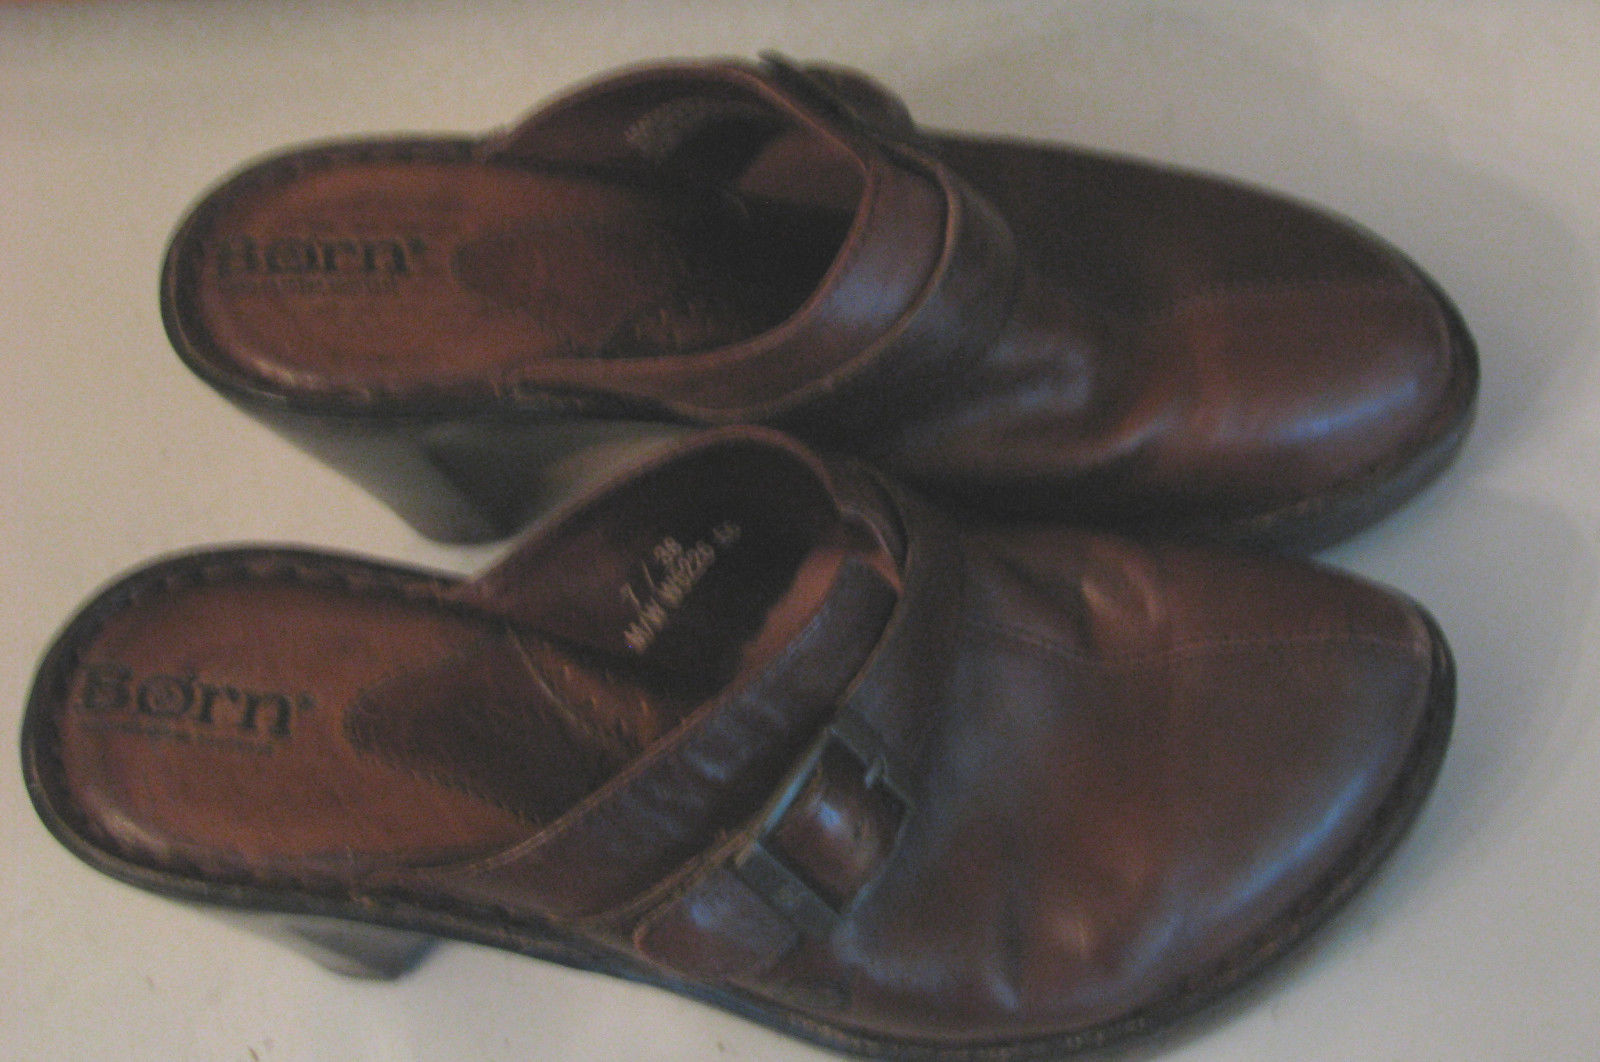 BORN Brown Leather MULES Woman's SHOES 7 / 38 Buckle Accent FANCY